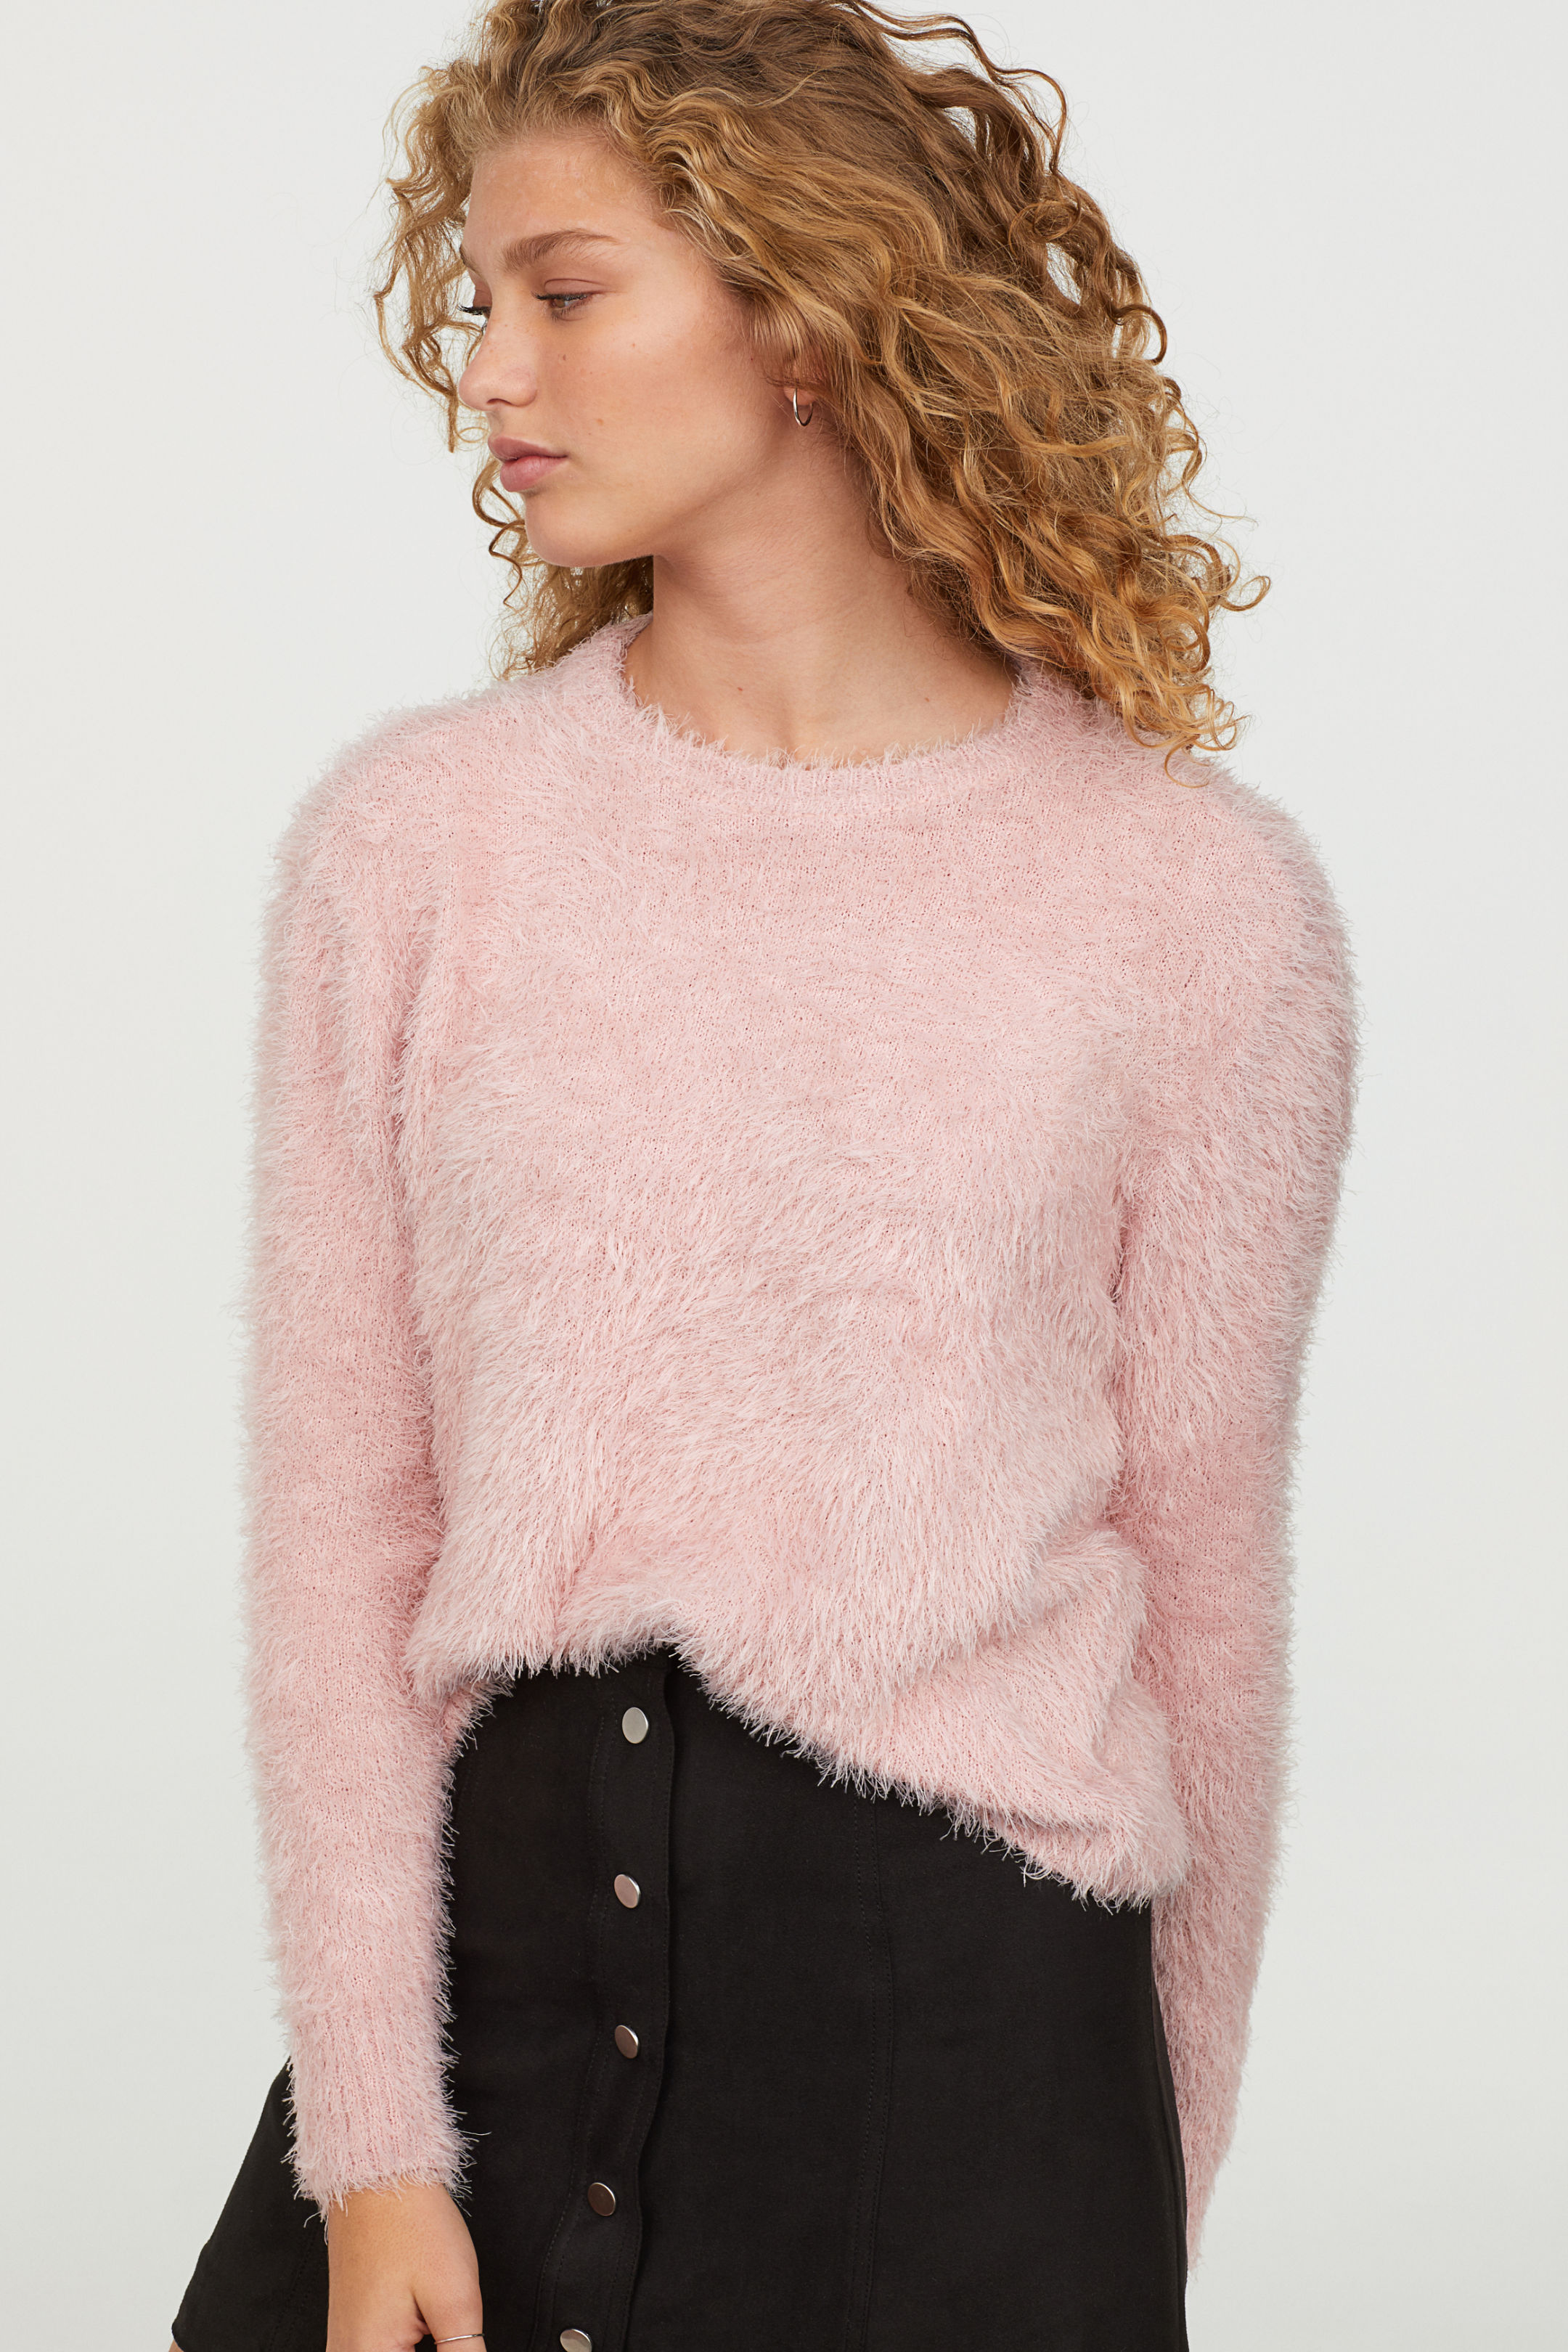 fluffly sweater